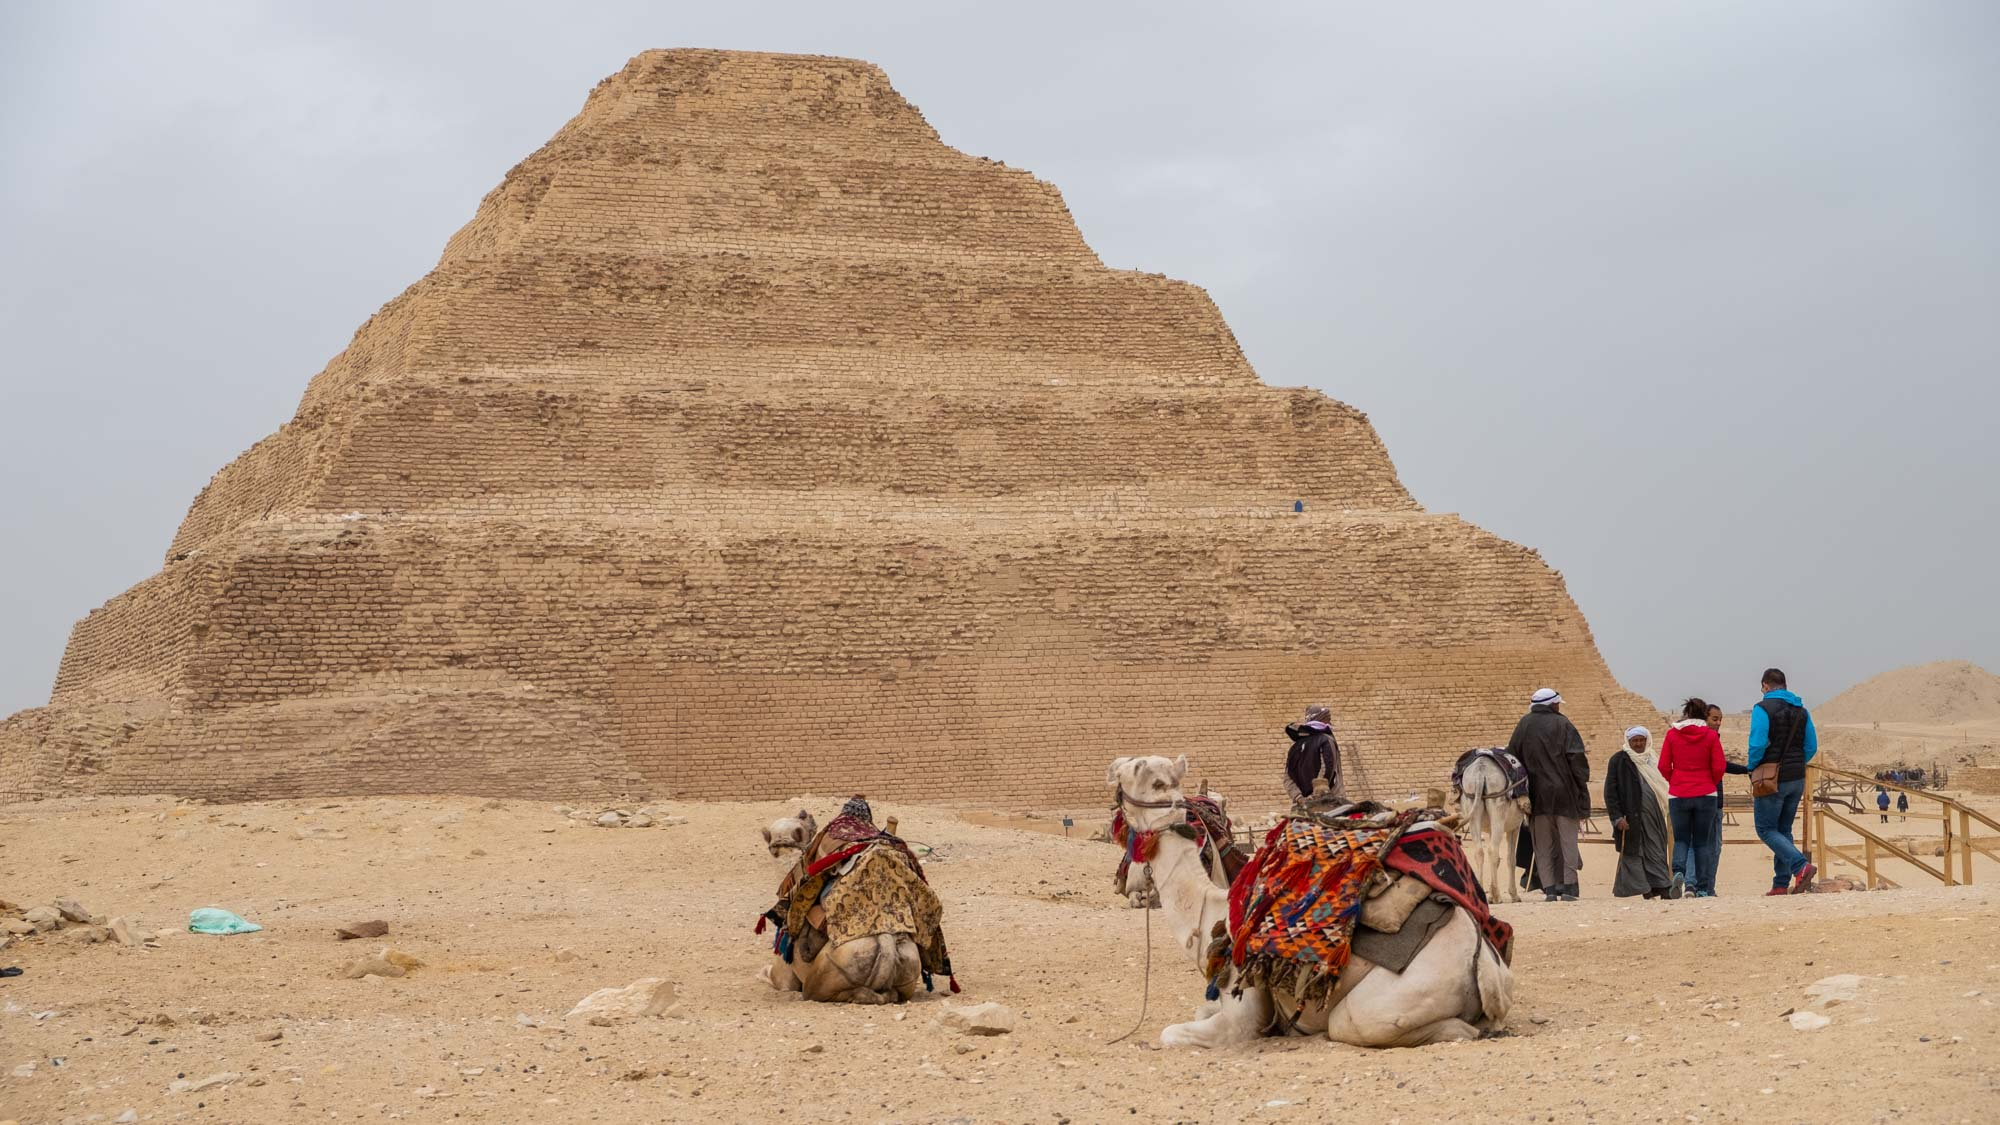 Egyptian pyramid in Saqqara